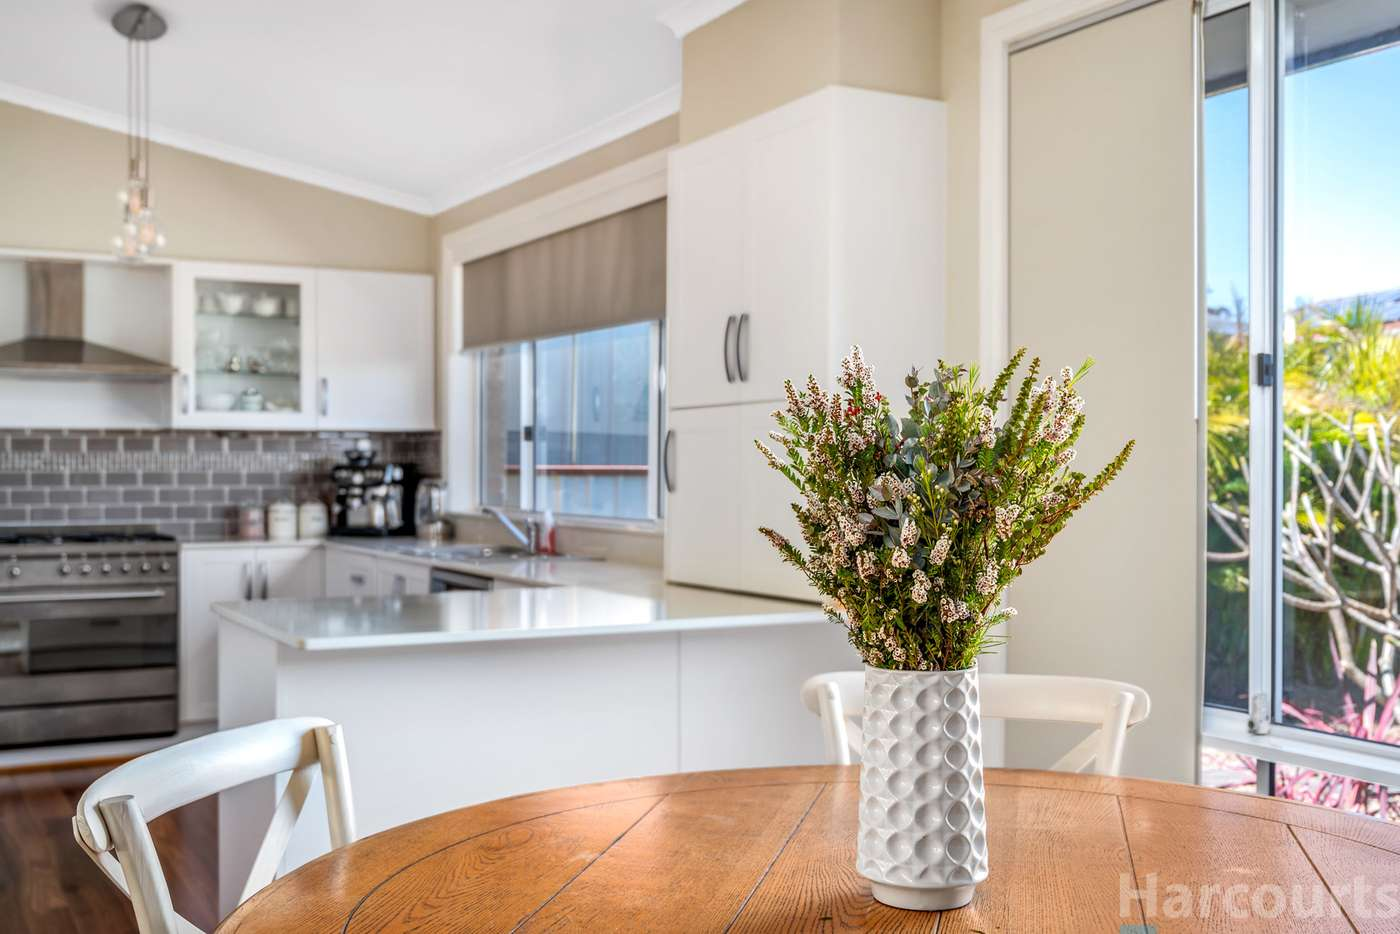 Sixth view of Homely house listing, 28 Nerang Place, Belmont NSW 2280